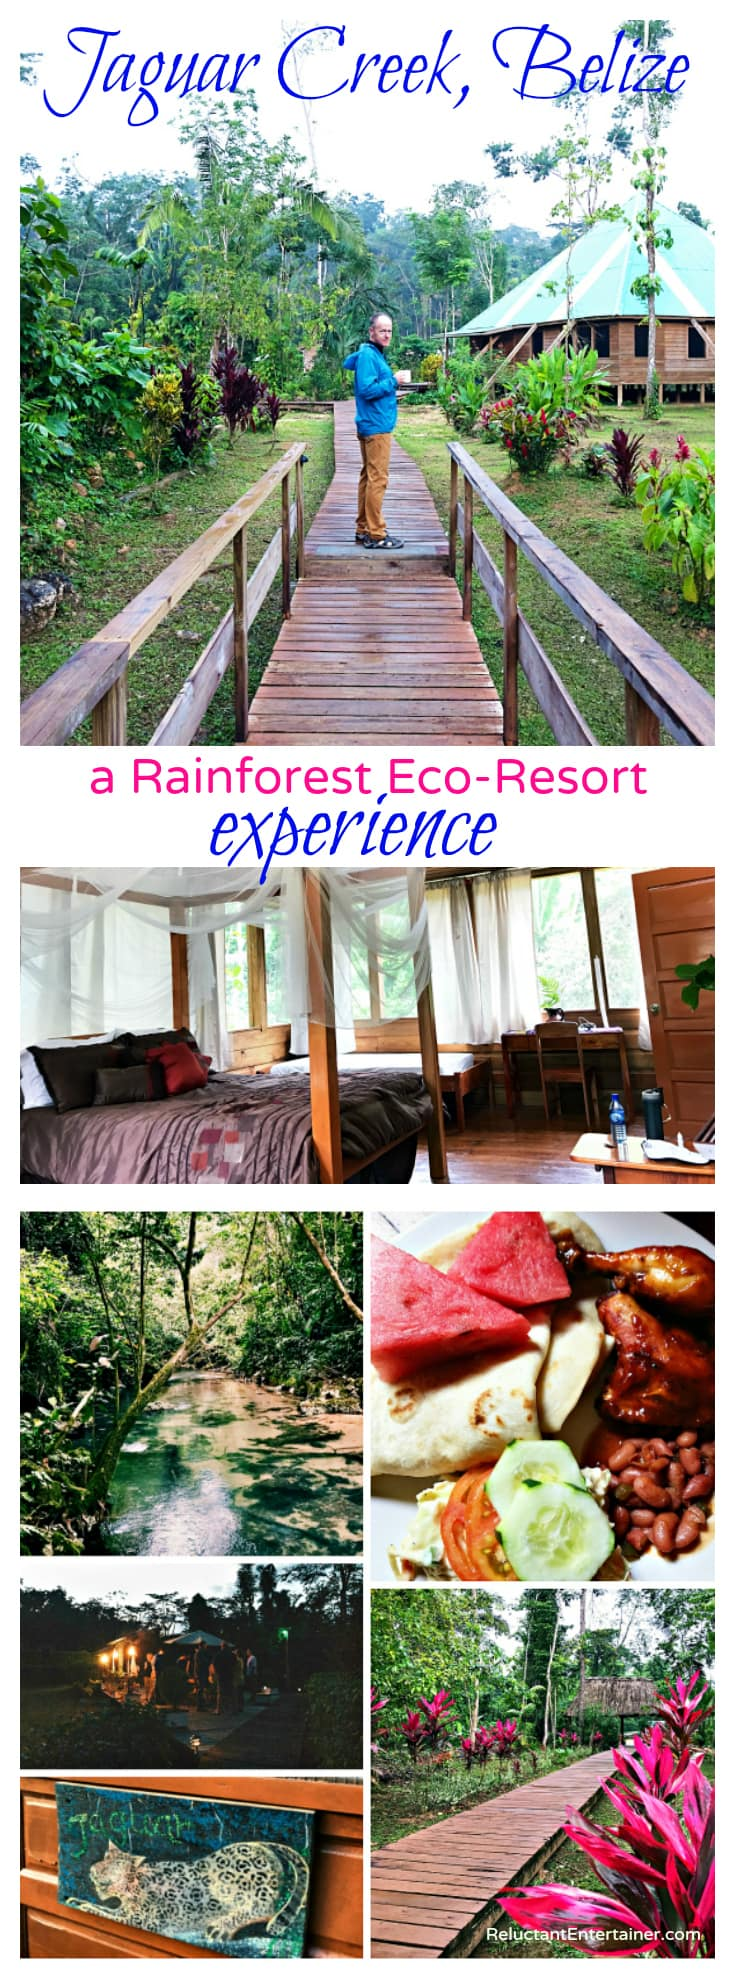 Jaquar Creek, Belize - a Rainforest Eco-Resort Experience